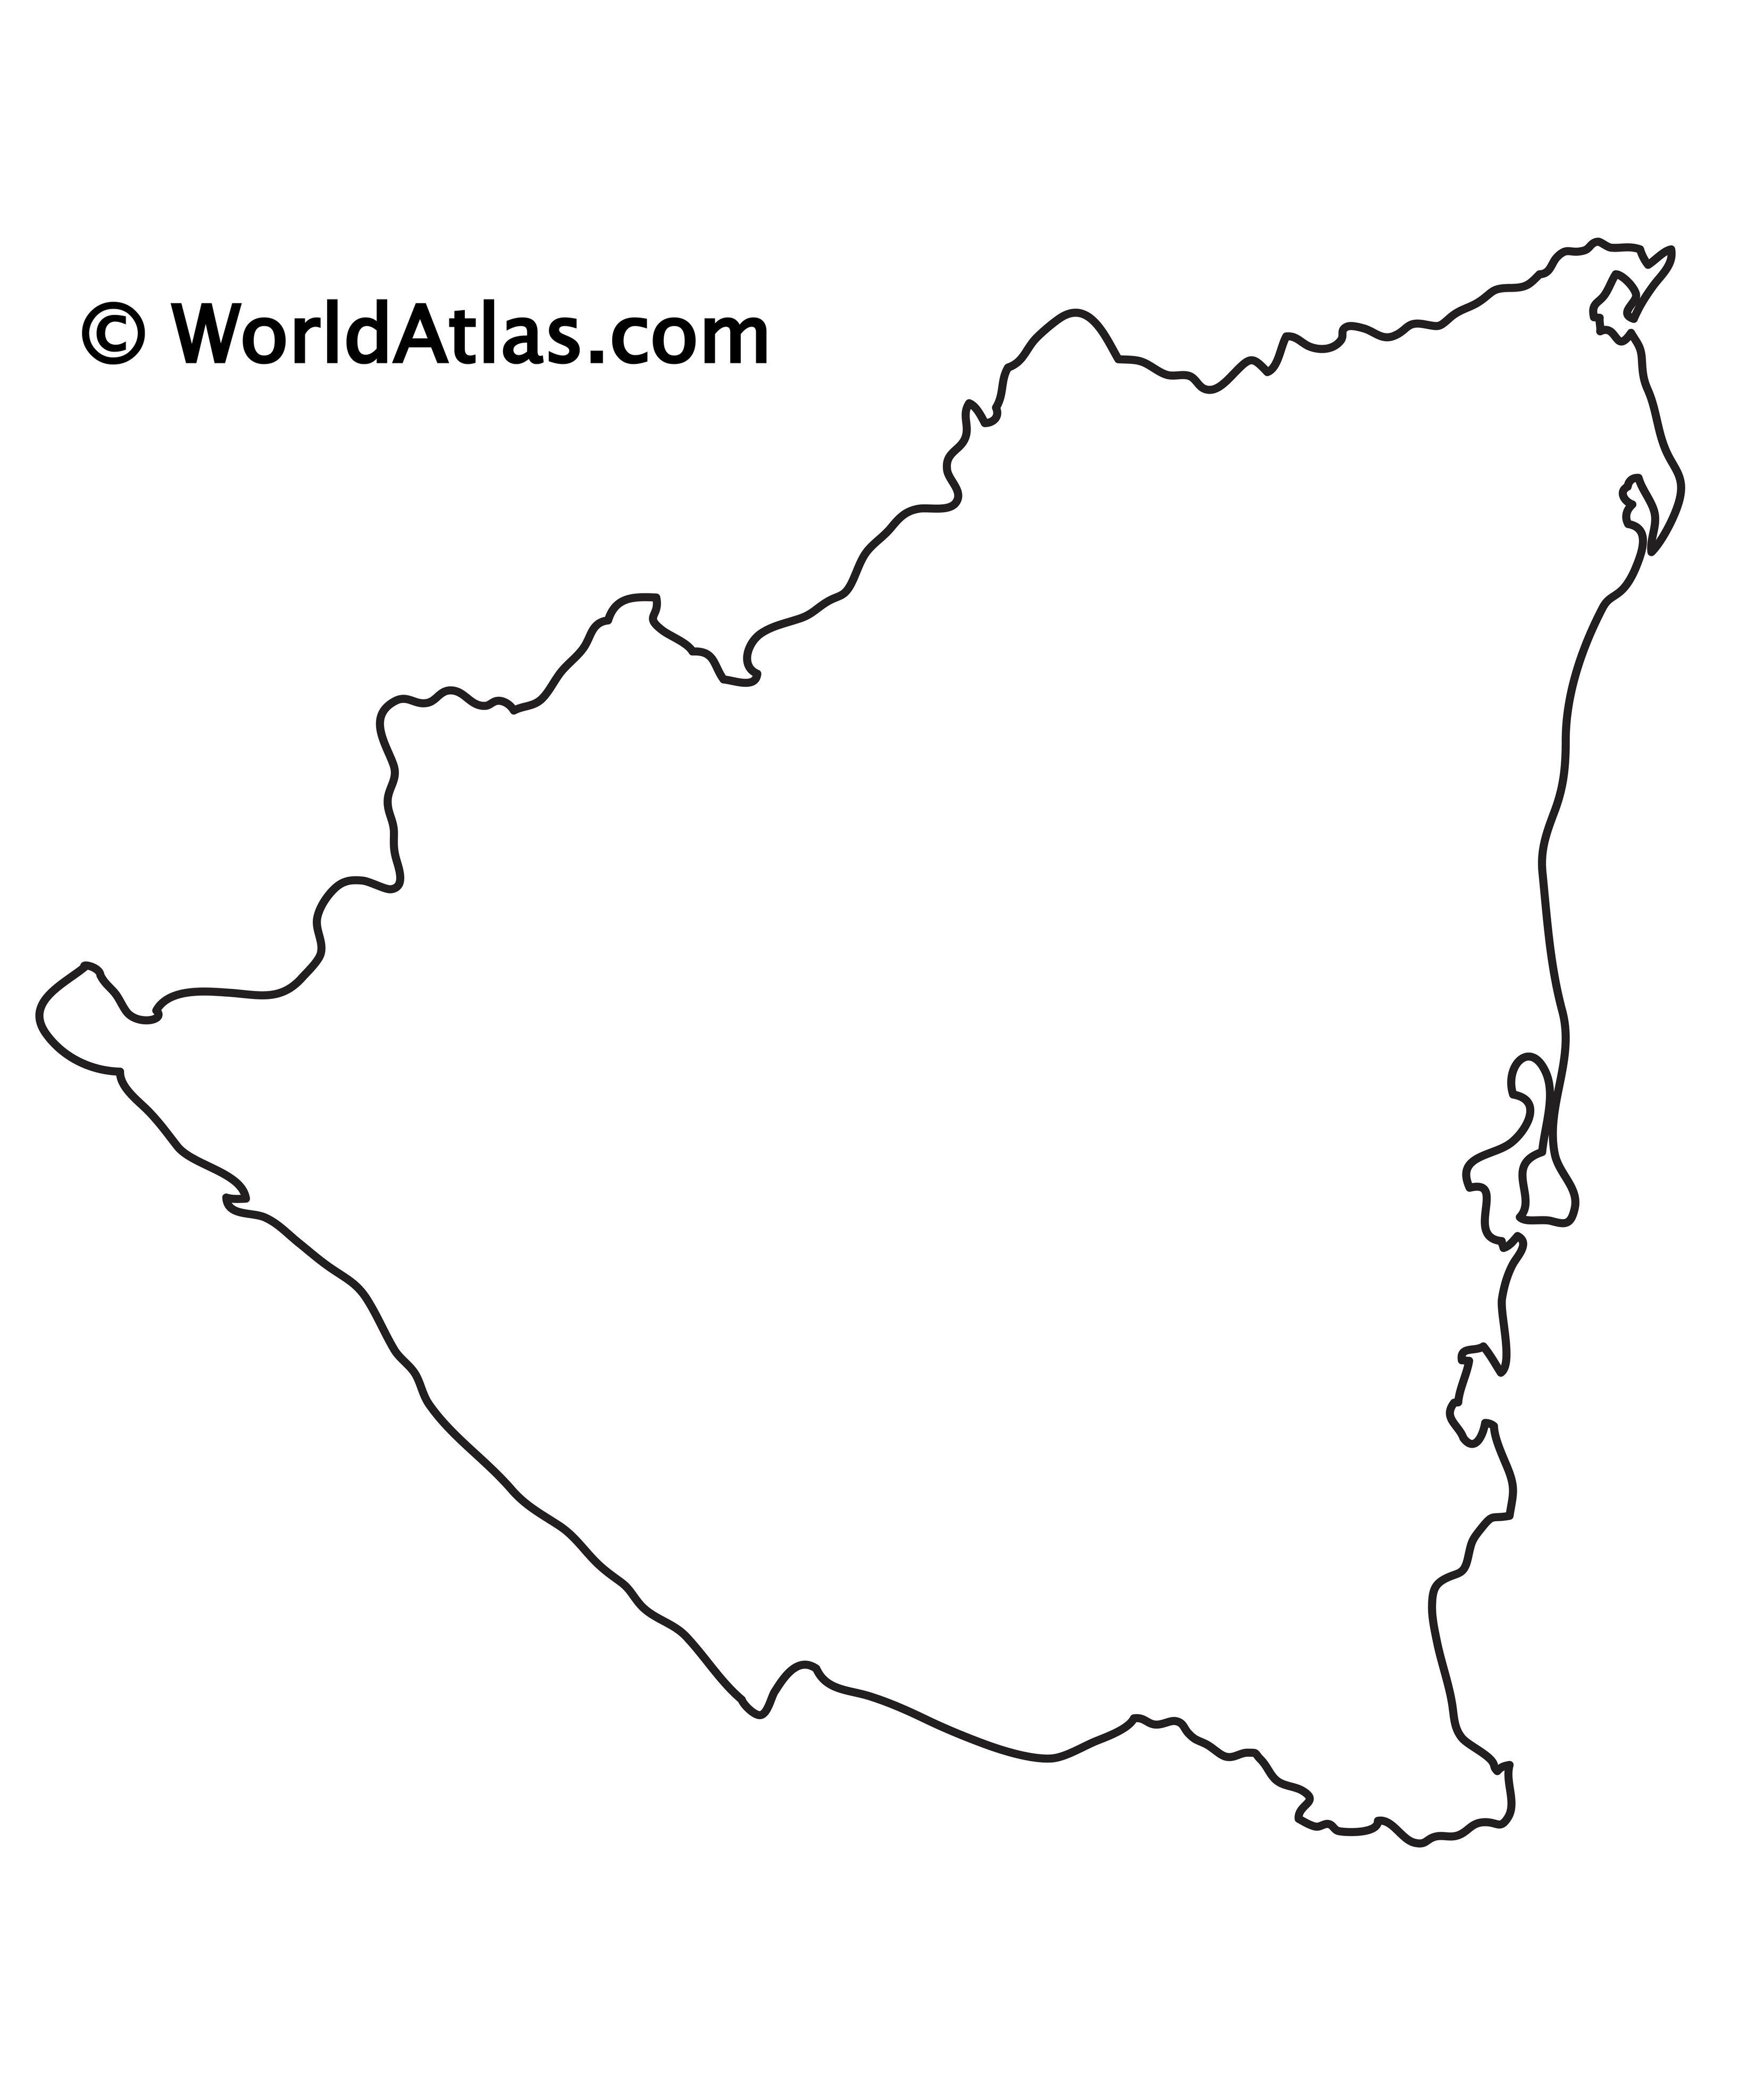 Blank Outline Map of Nicaragua